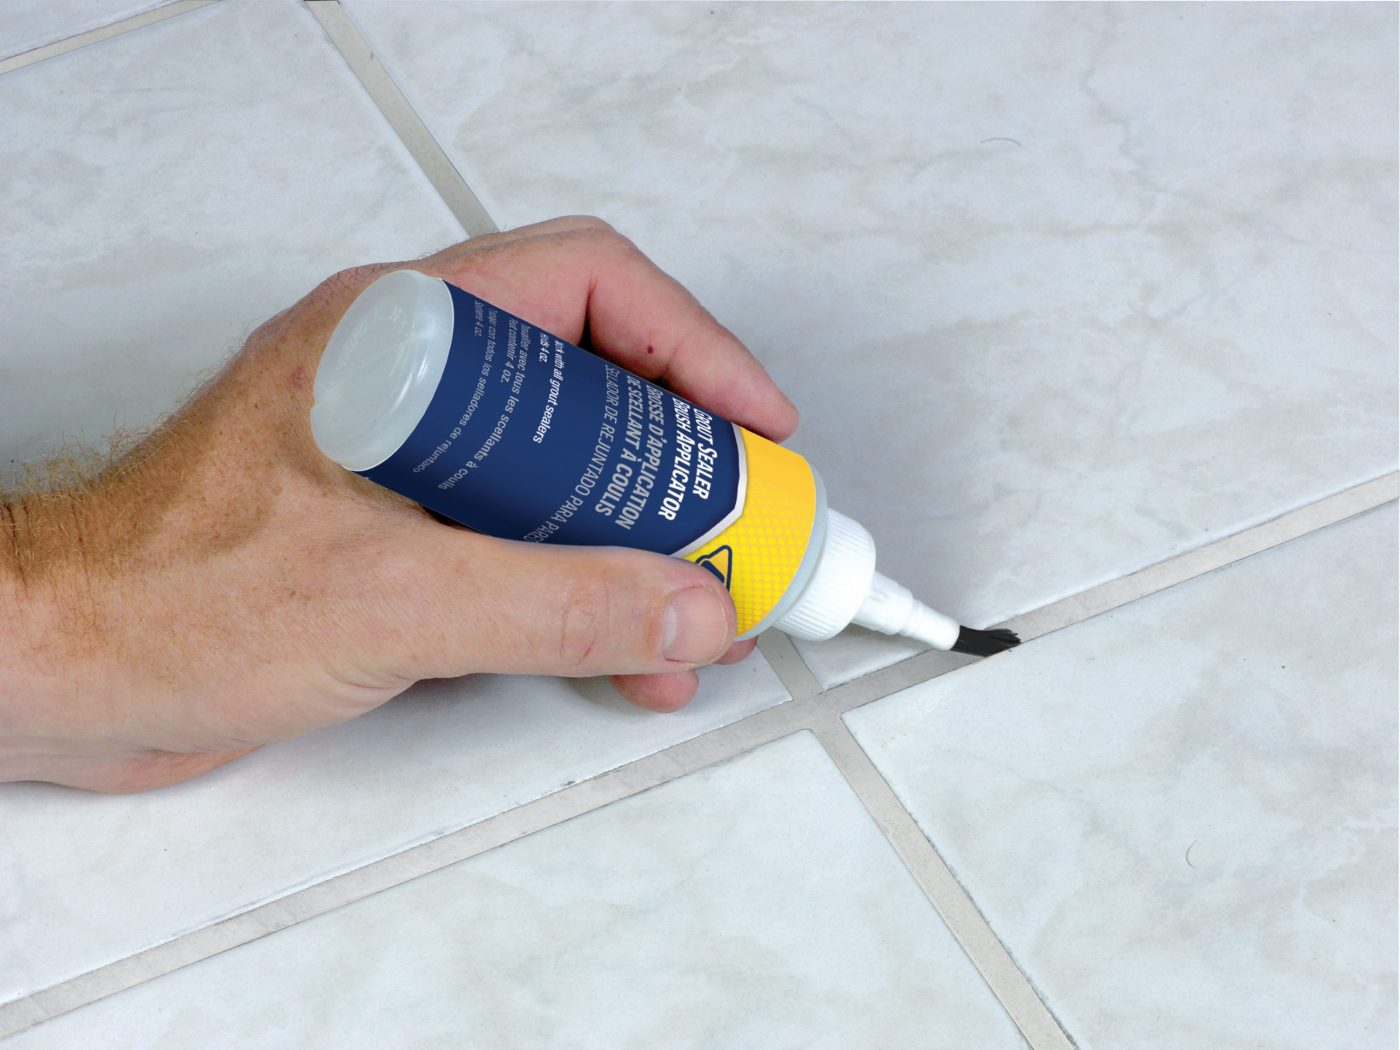 Grout Sealer Brush Applicator